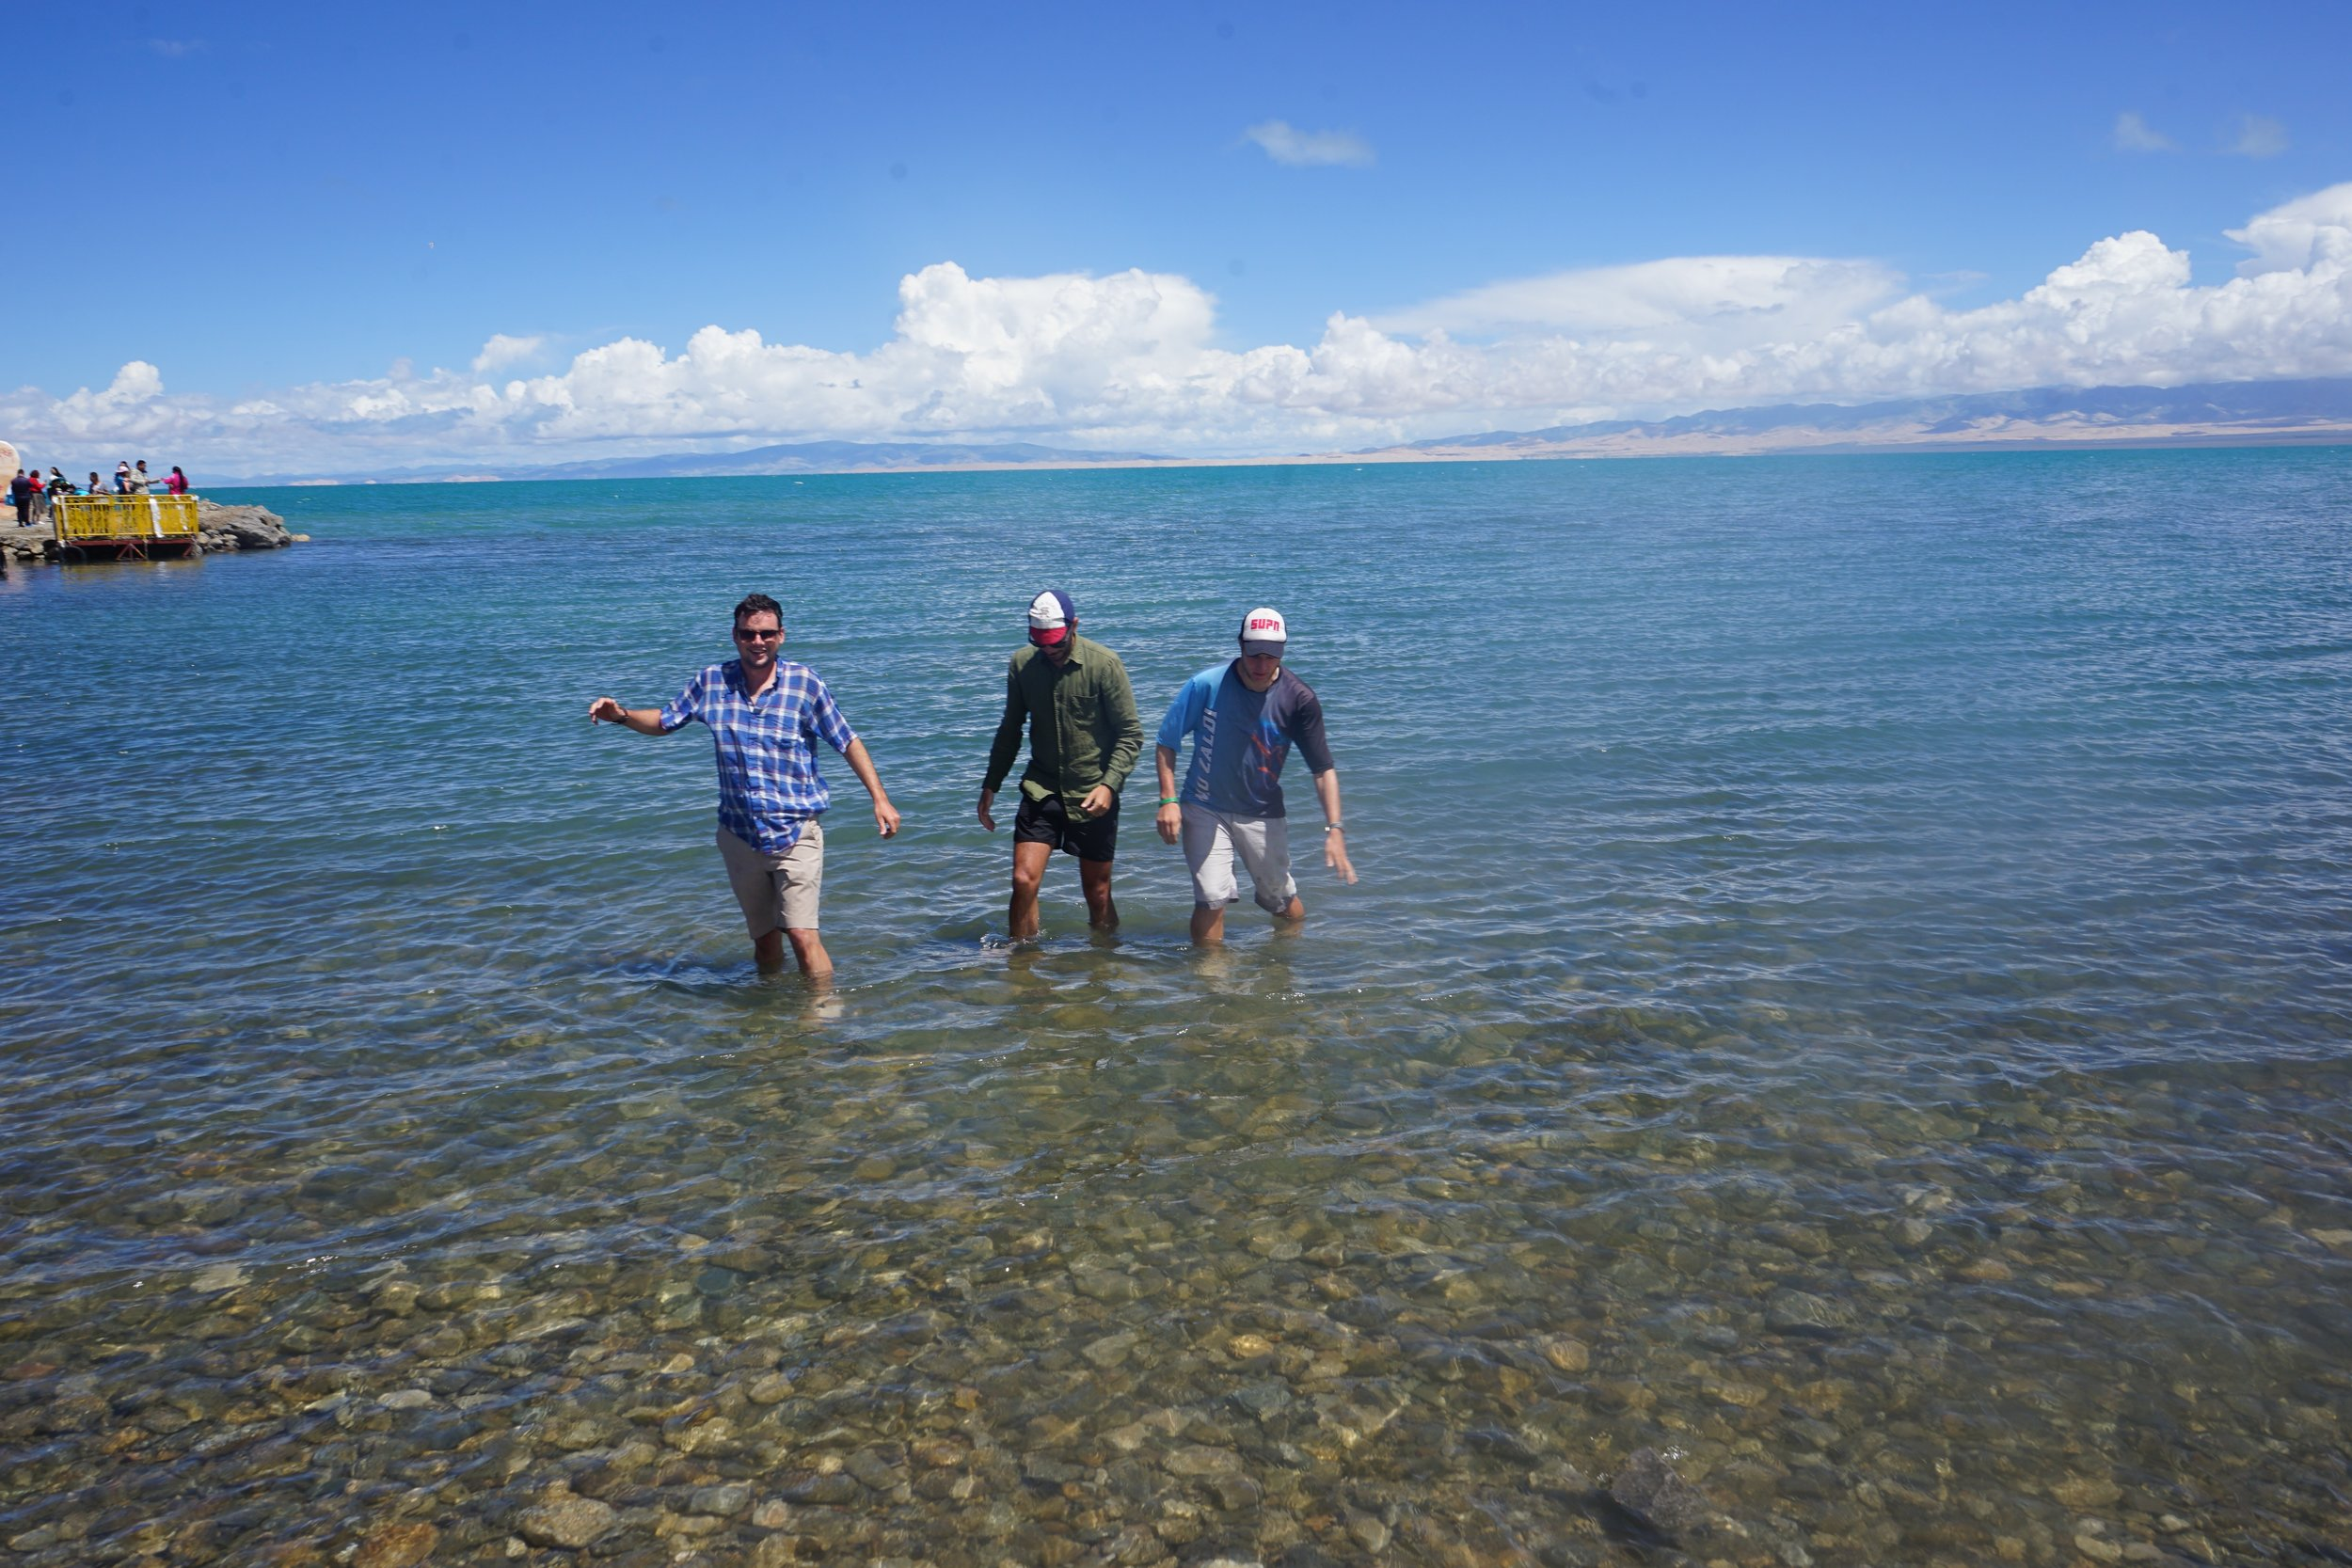 Qinghai Lake, China's largest, and it's salt water